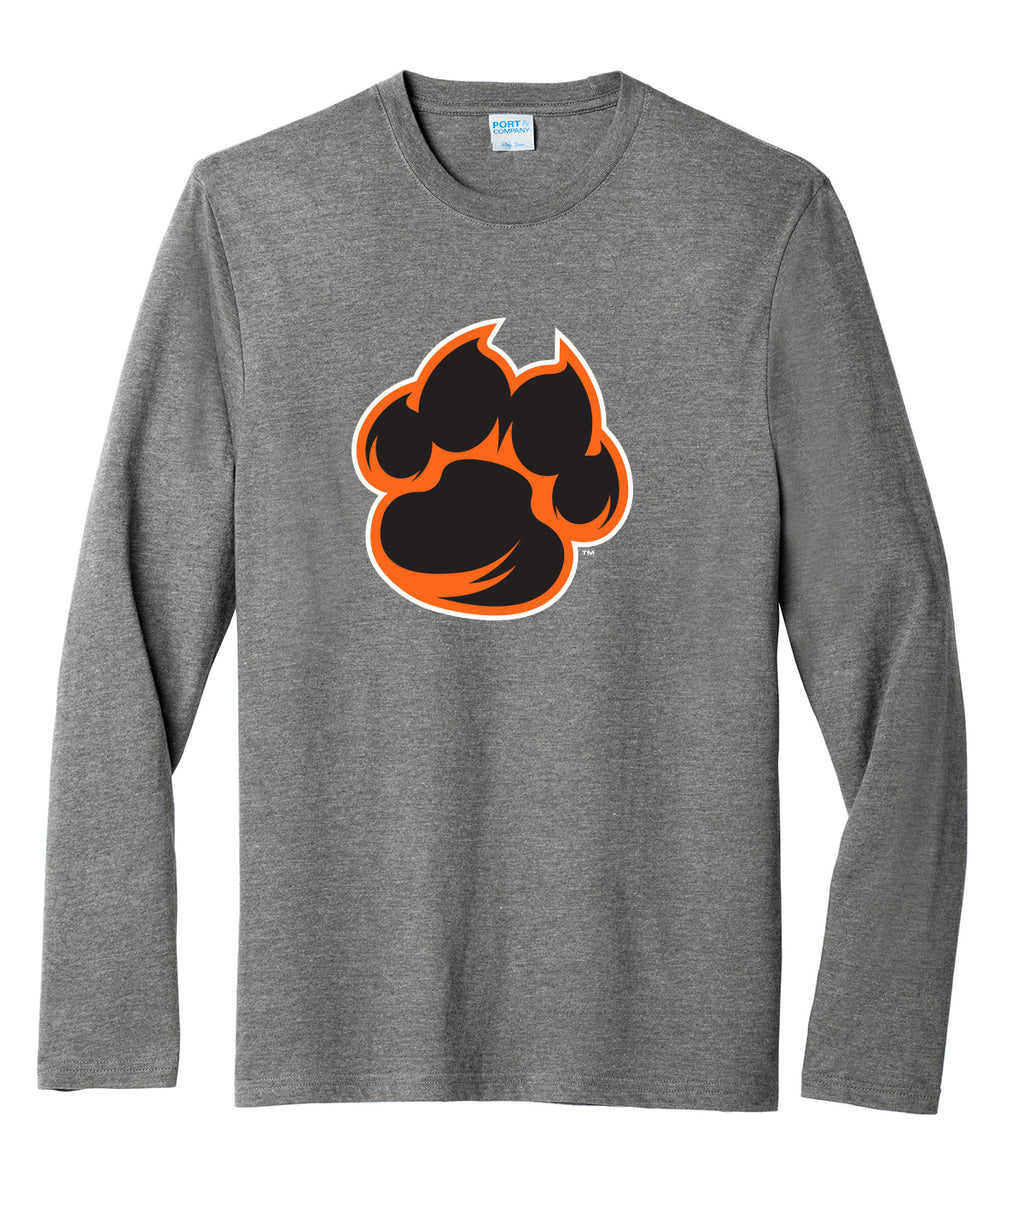 Hillside Pride Long-Sleeve Soft Tee